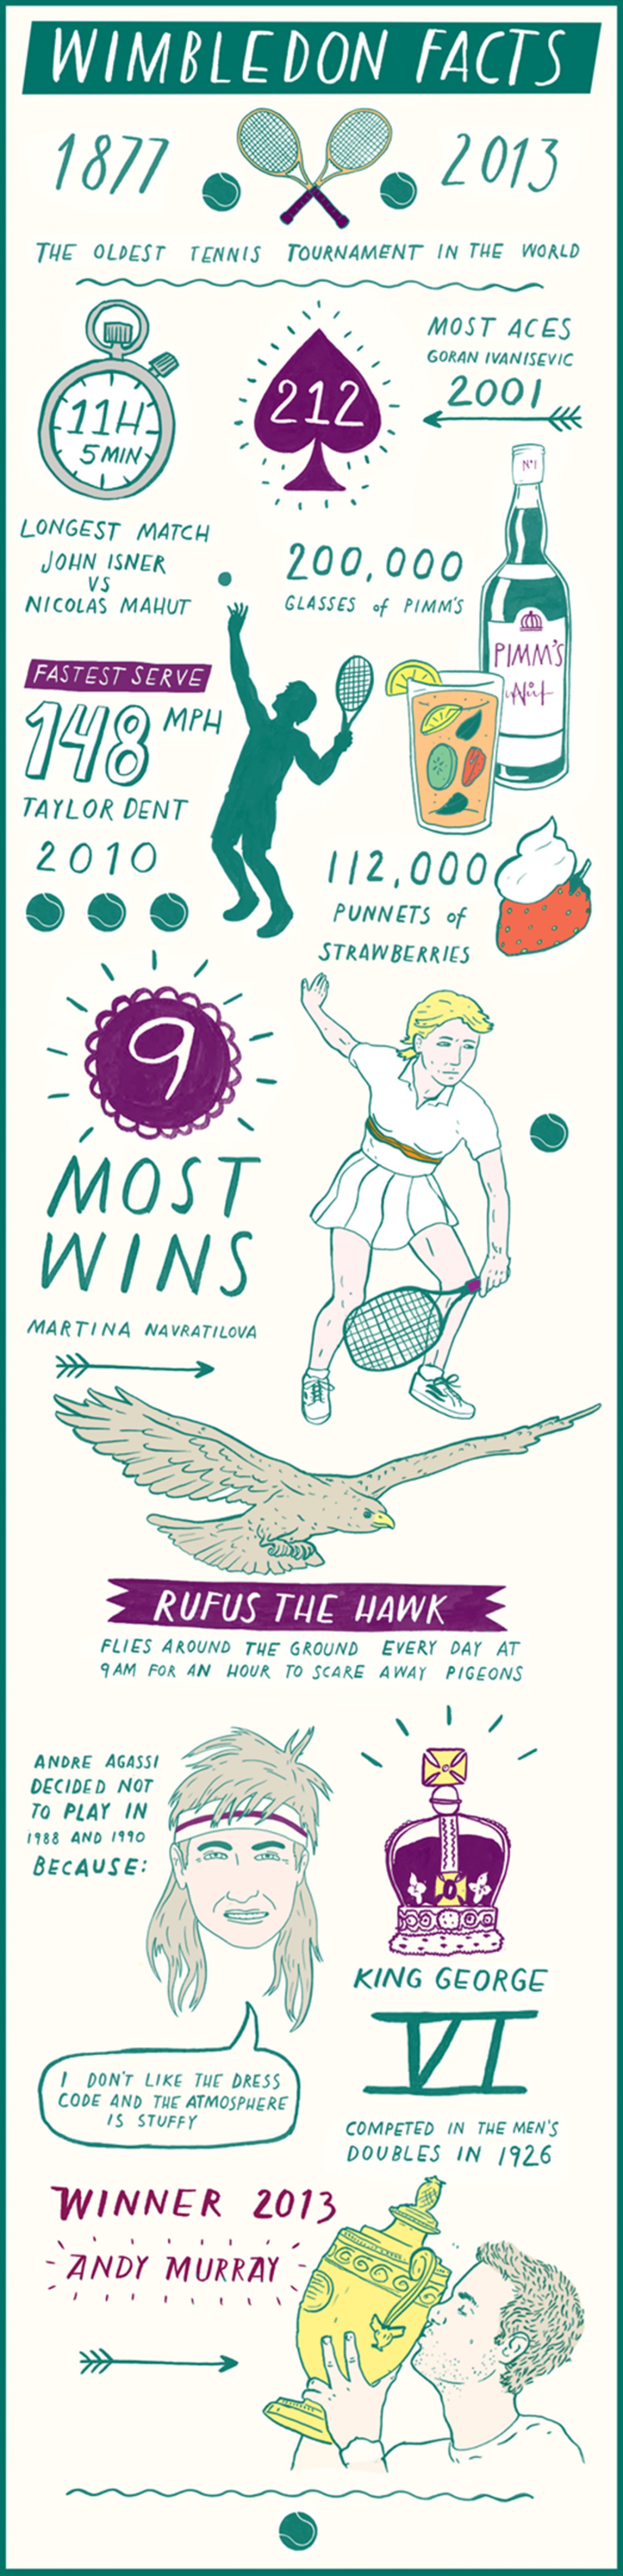 Wimbledon Facts Infographic